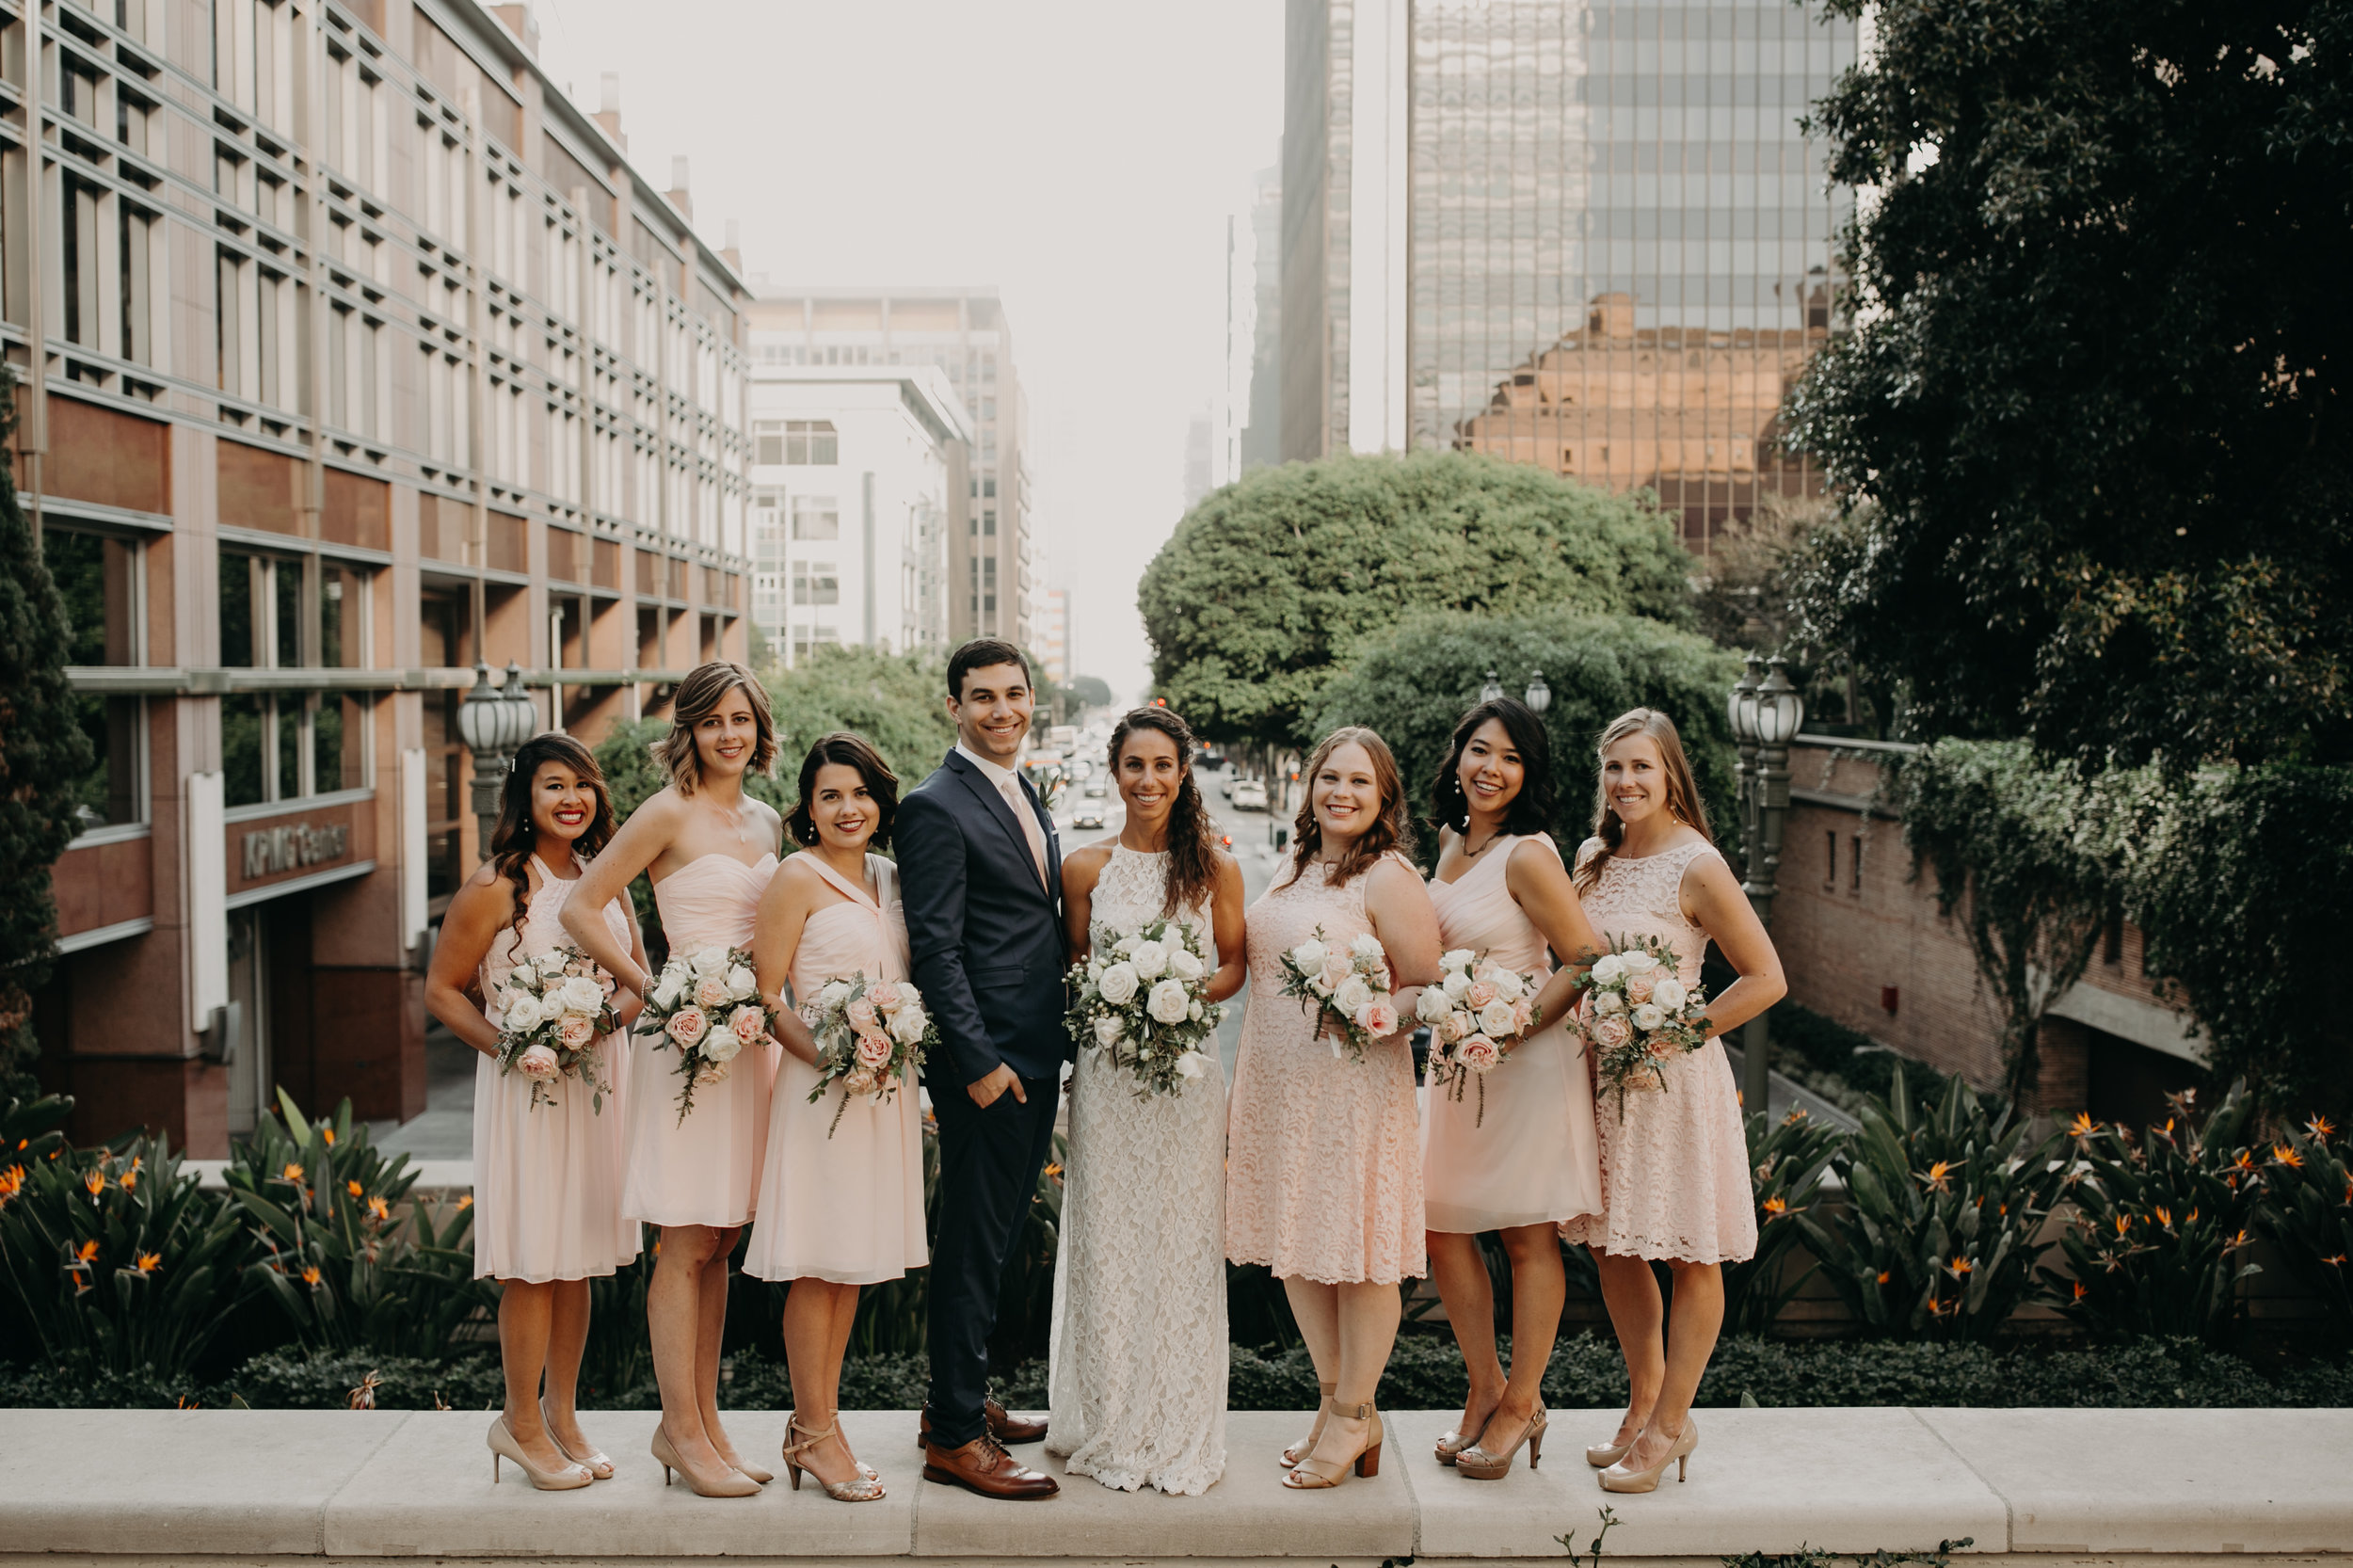 Los Angeles Library Wedding Jonathan & Amelia  Emily Magers Photography-446.jpg